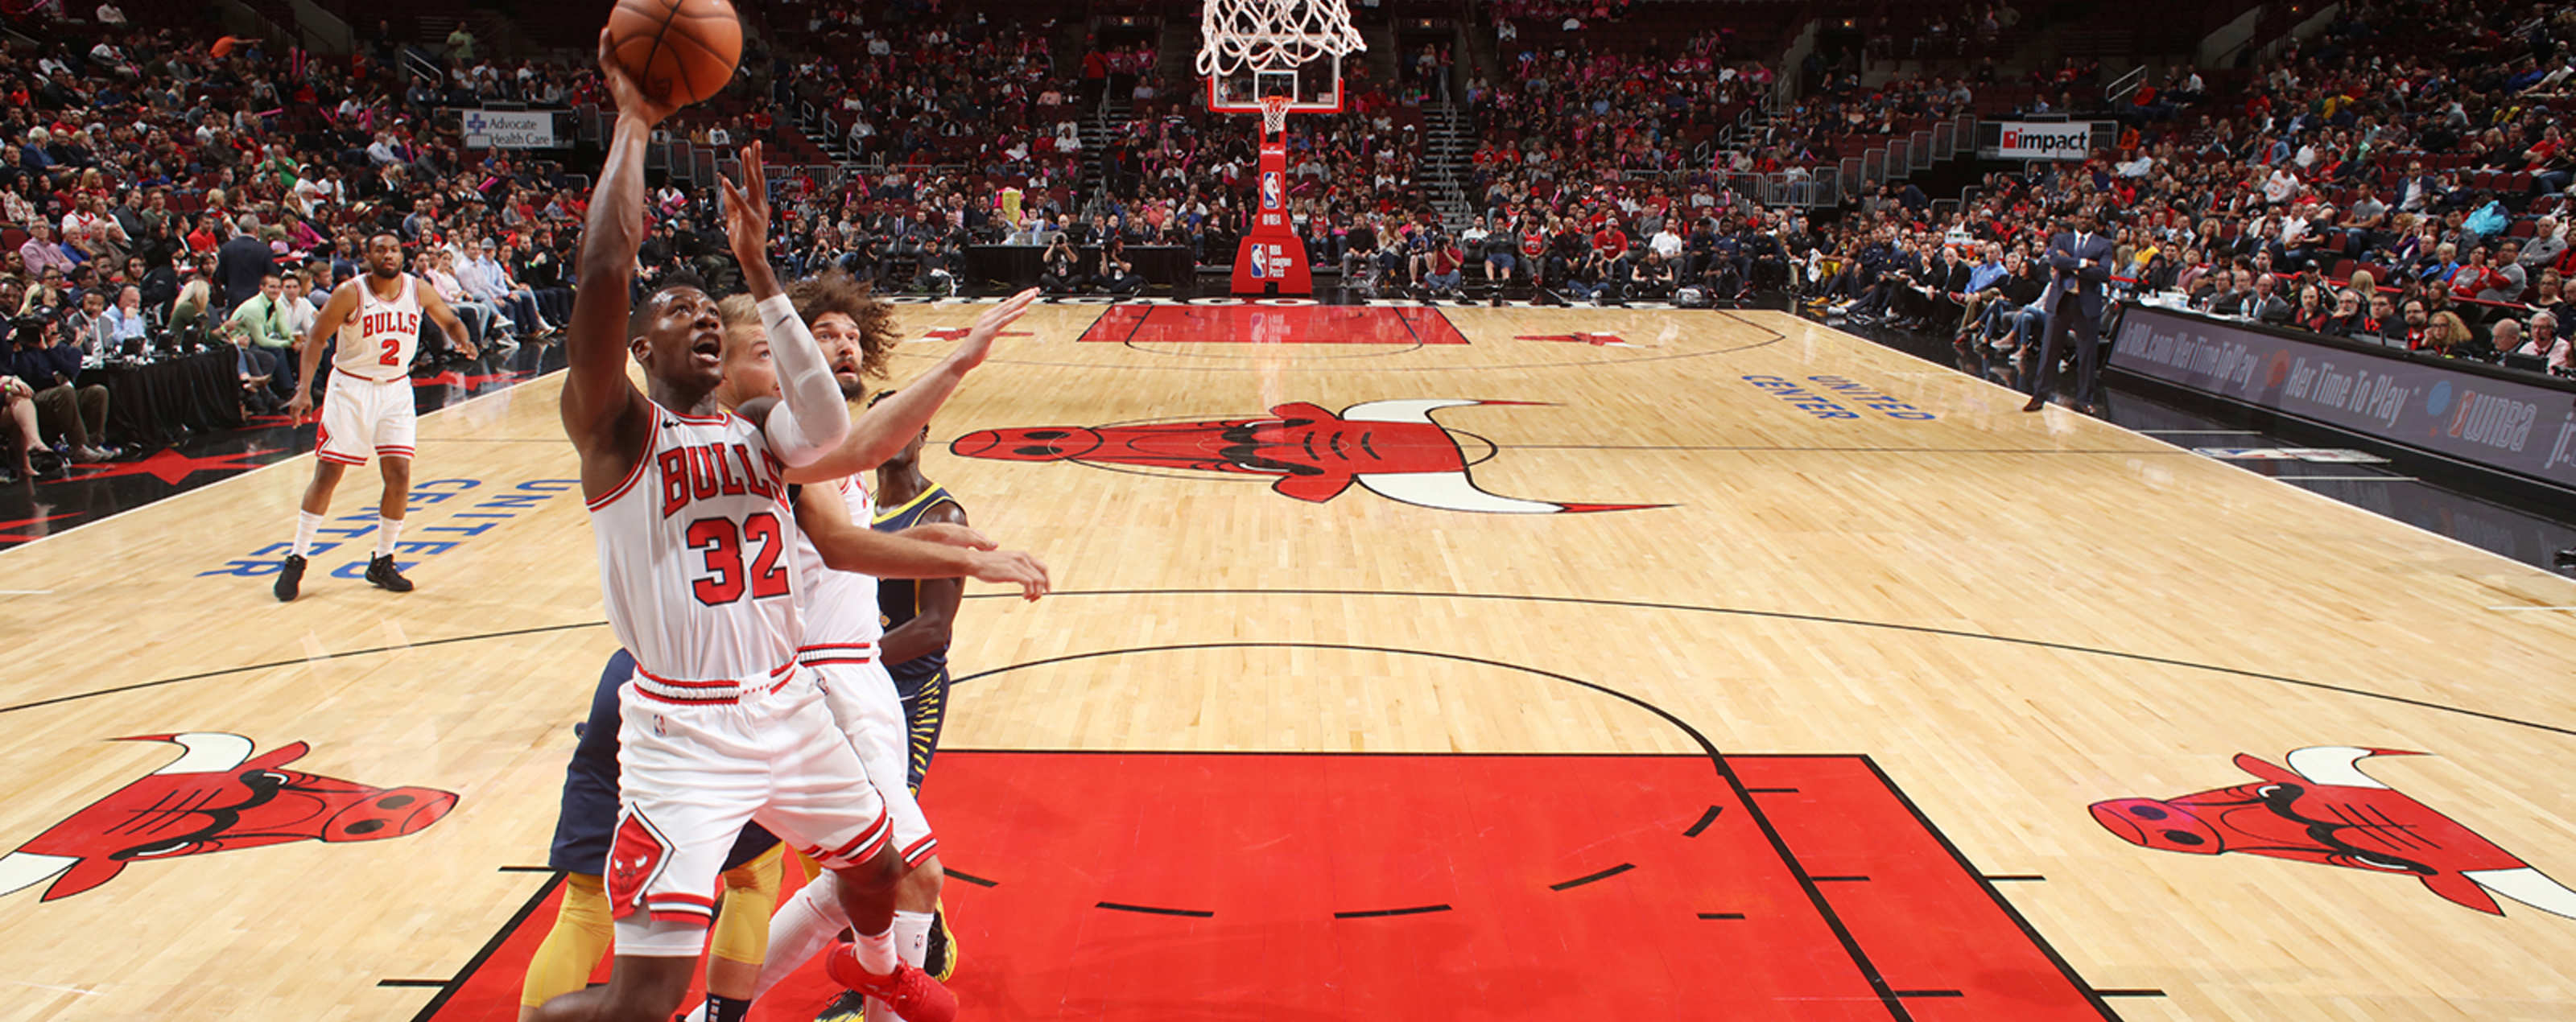 Bulls Defense Steps Up In 104 89 Win Over Pacers Chicago Bulls